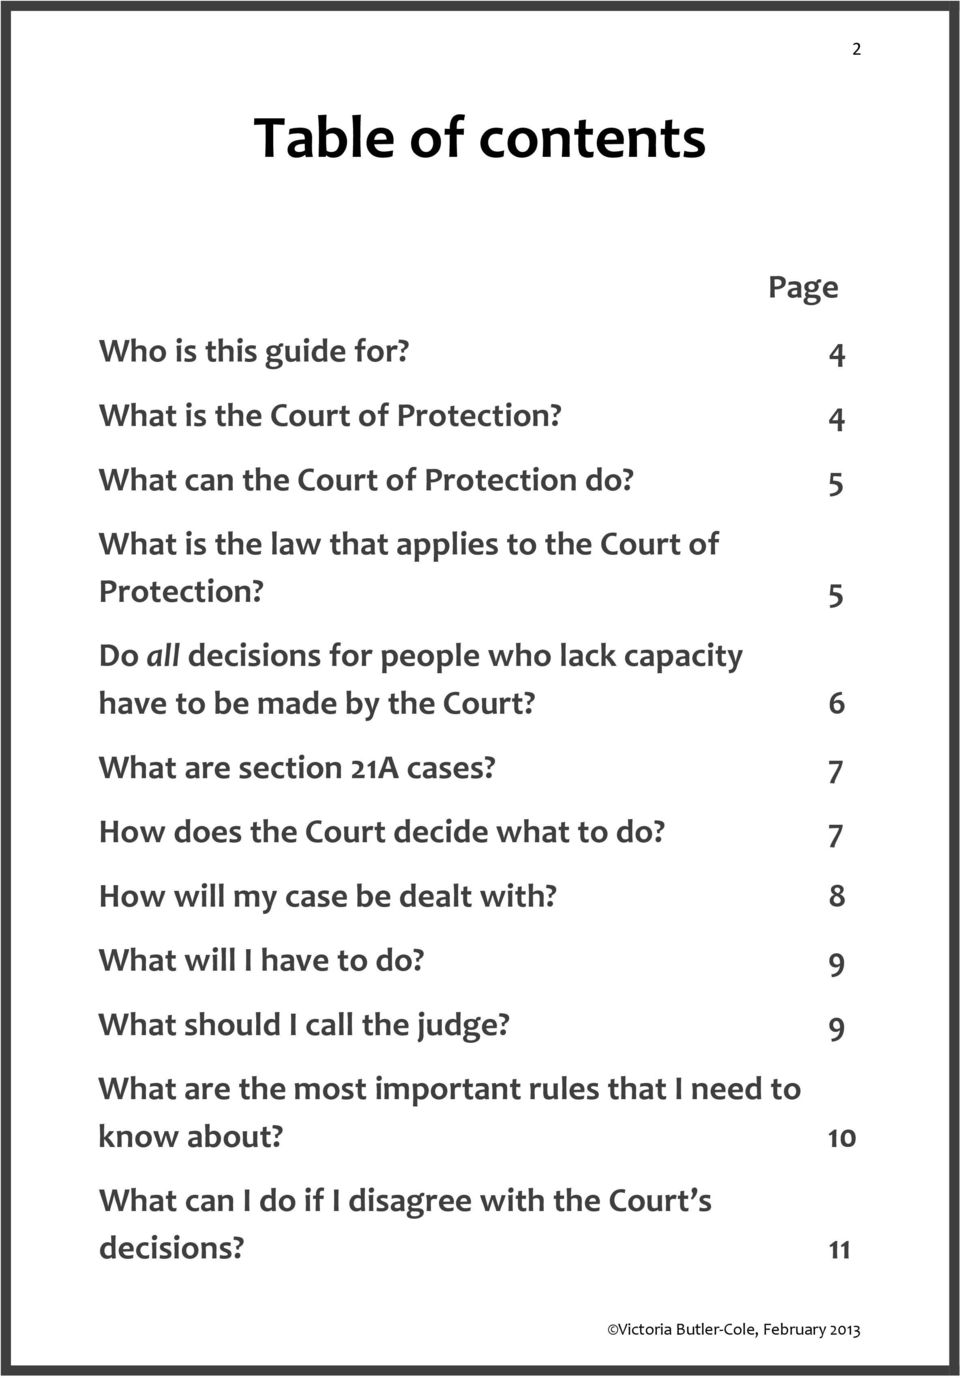 6 What are section 21A cases? 7 How does the Court decide what to do? 7 How will my case be dealt with? 8 What will I have to do?